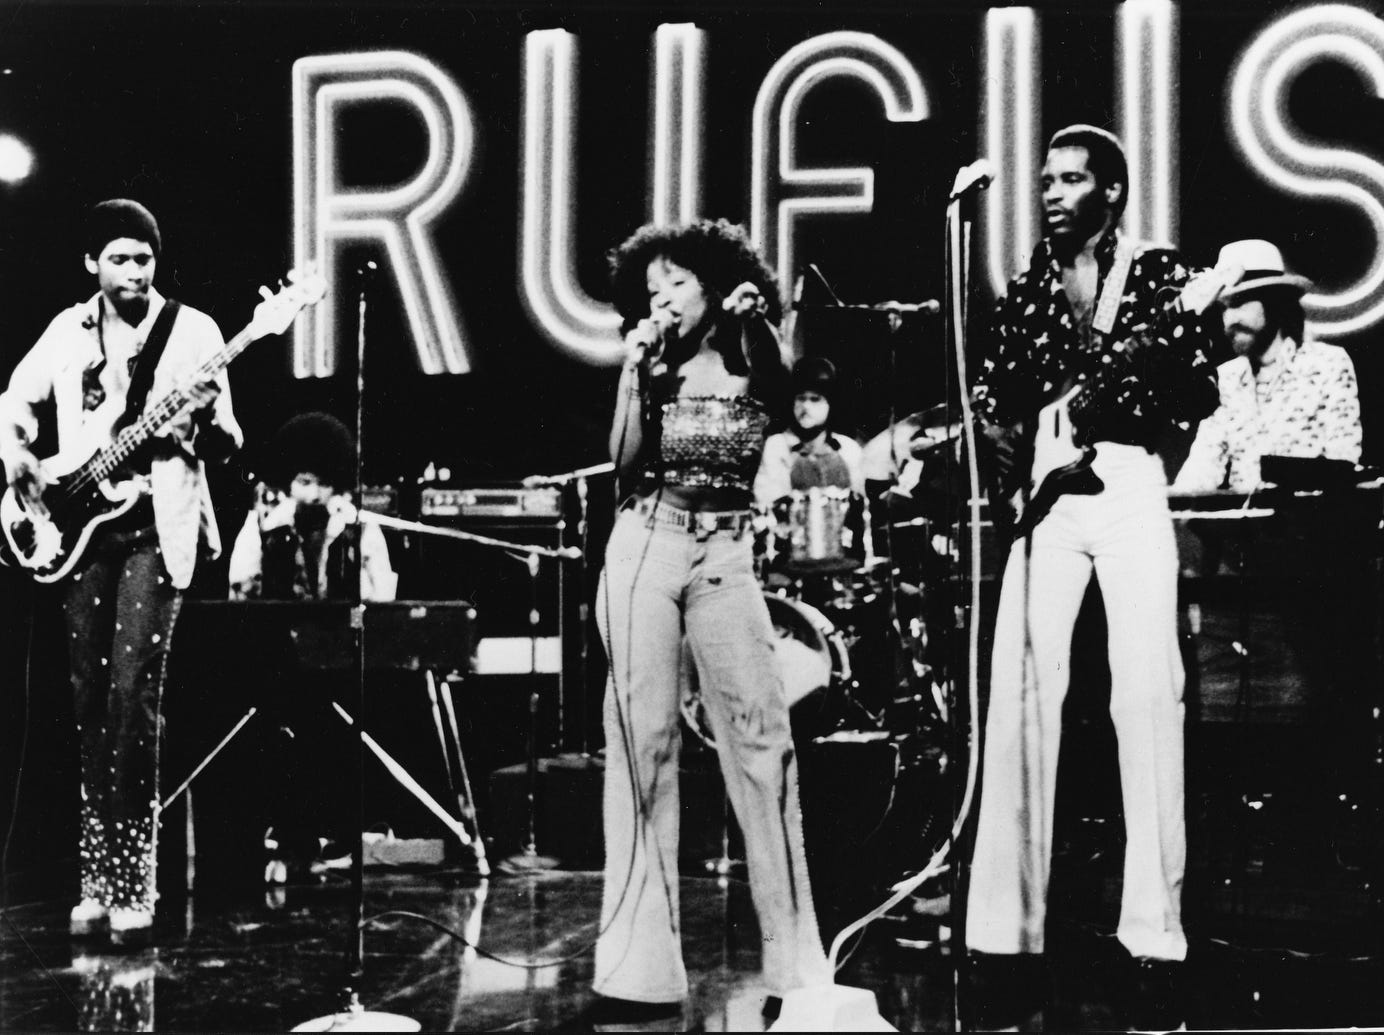 """Rufus featuring Chaka Khan performs on the television show """"Midnight Special,"""" 1975."""